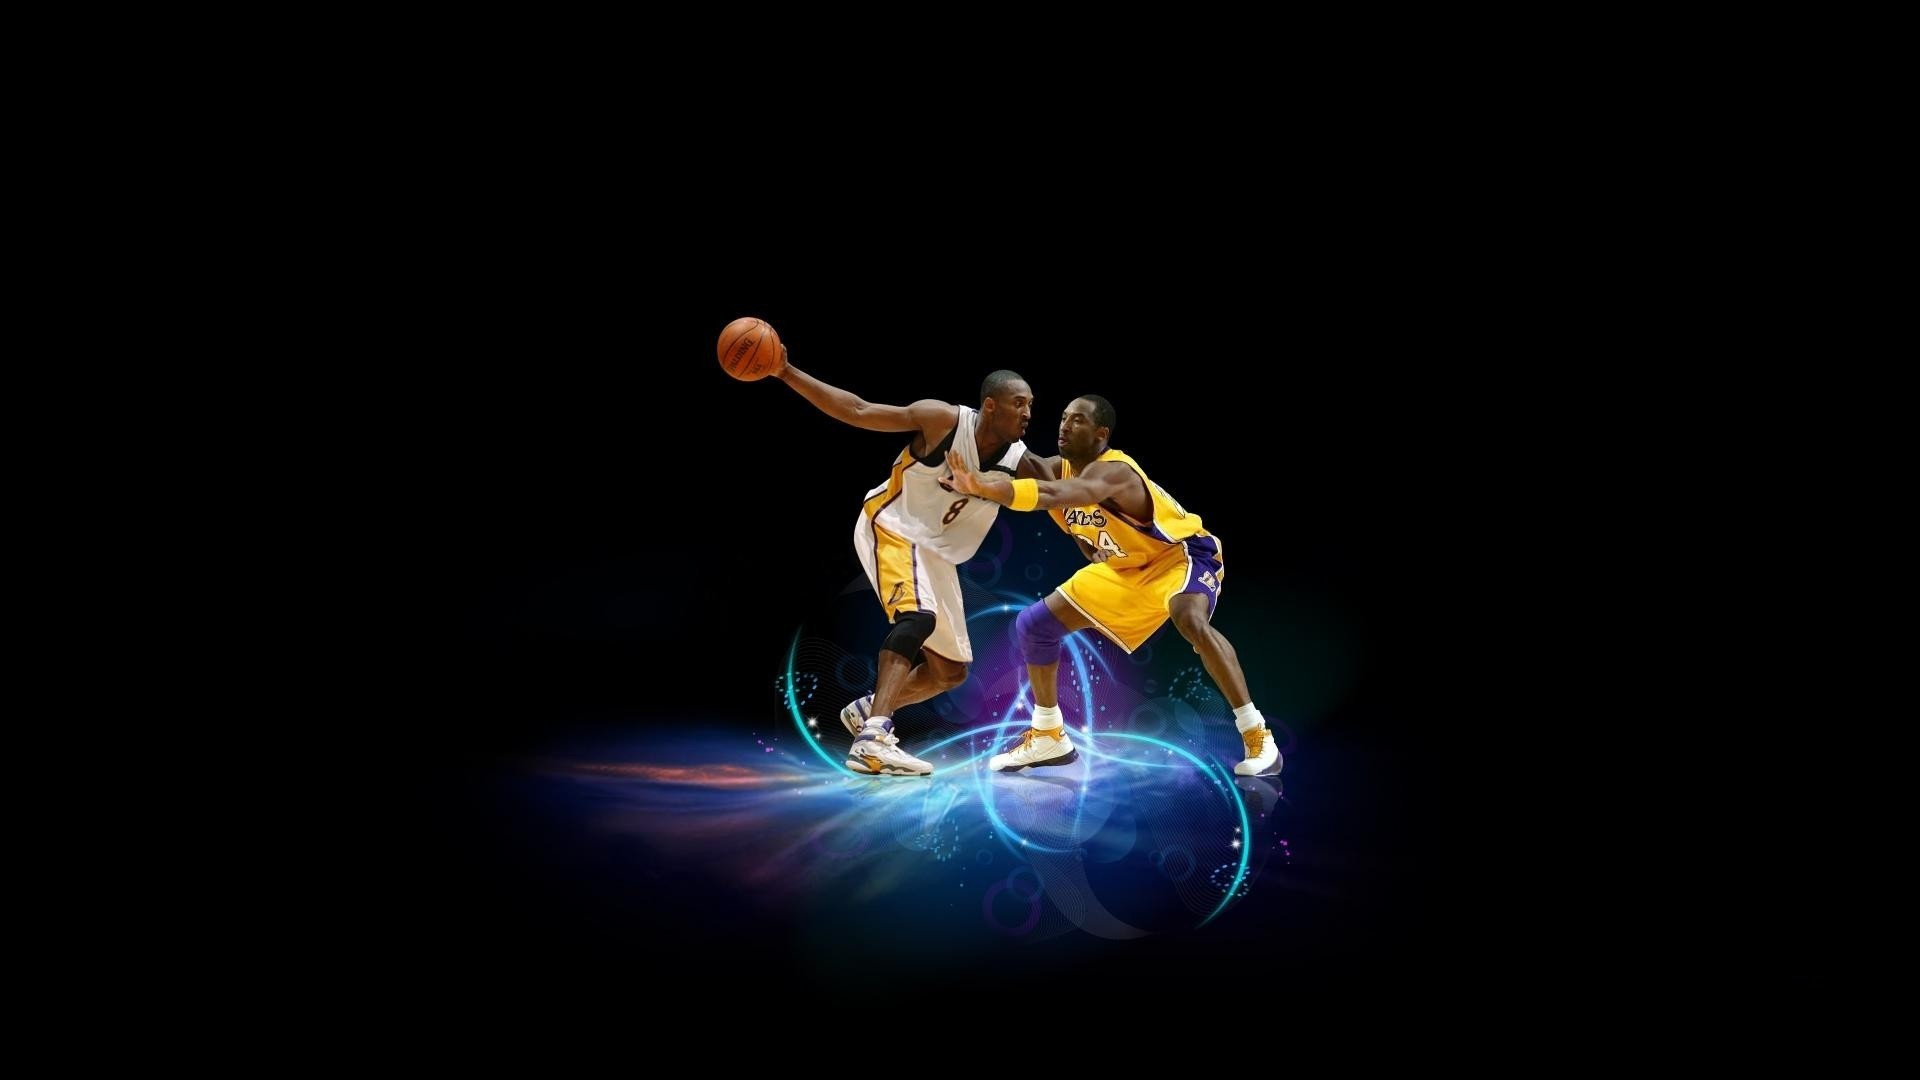 1920x1080 Basketball Court Wallpapers (5 Wallpapers)